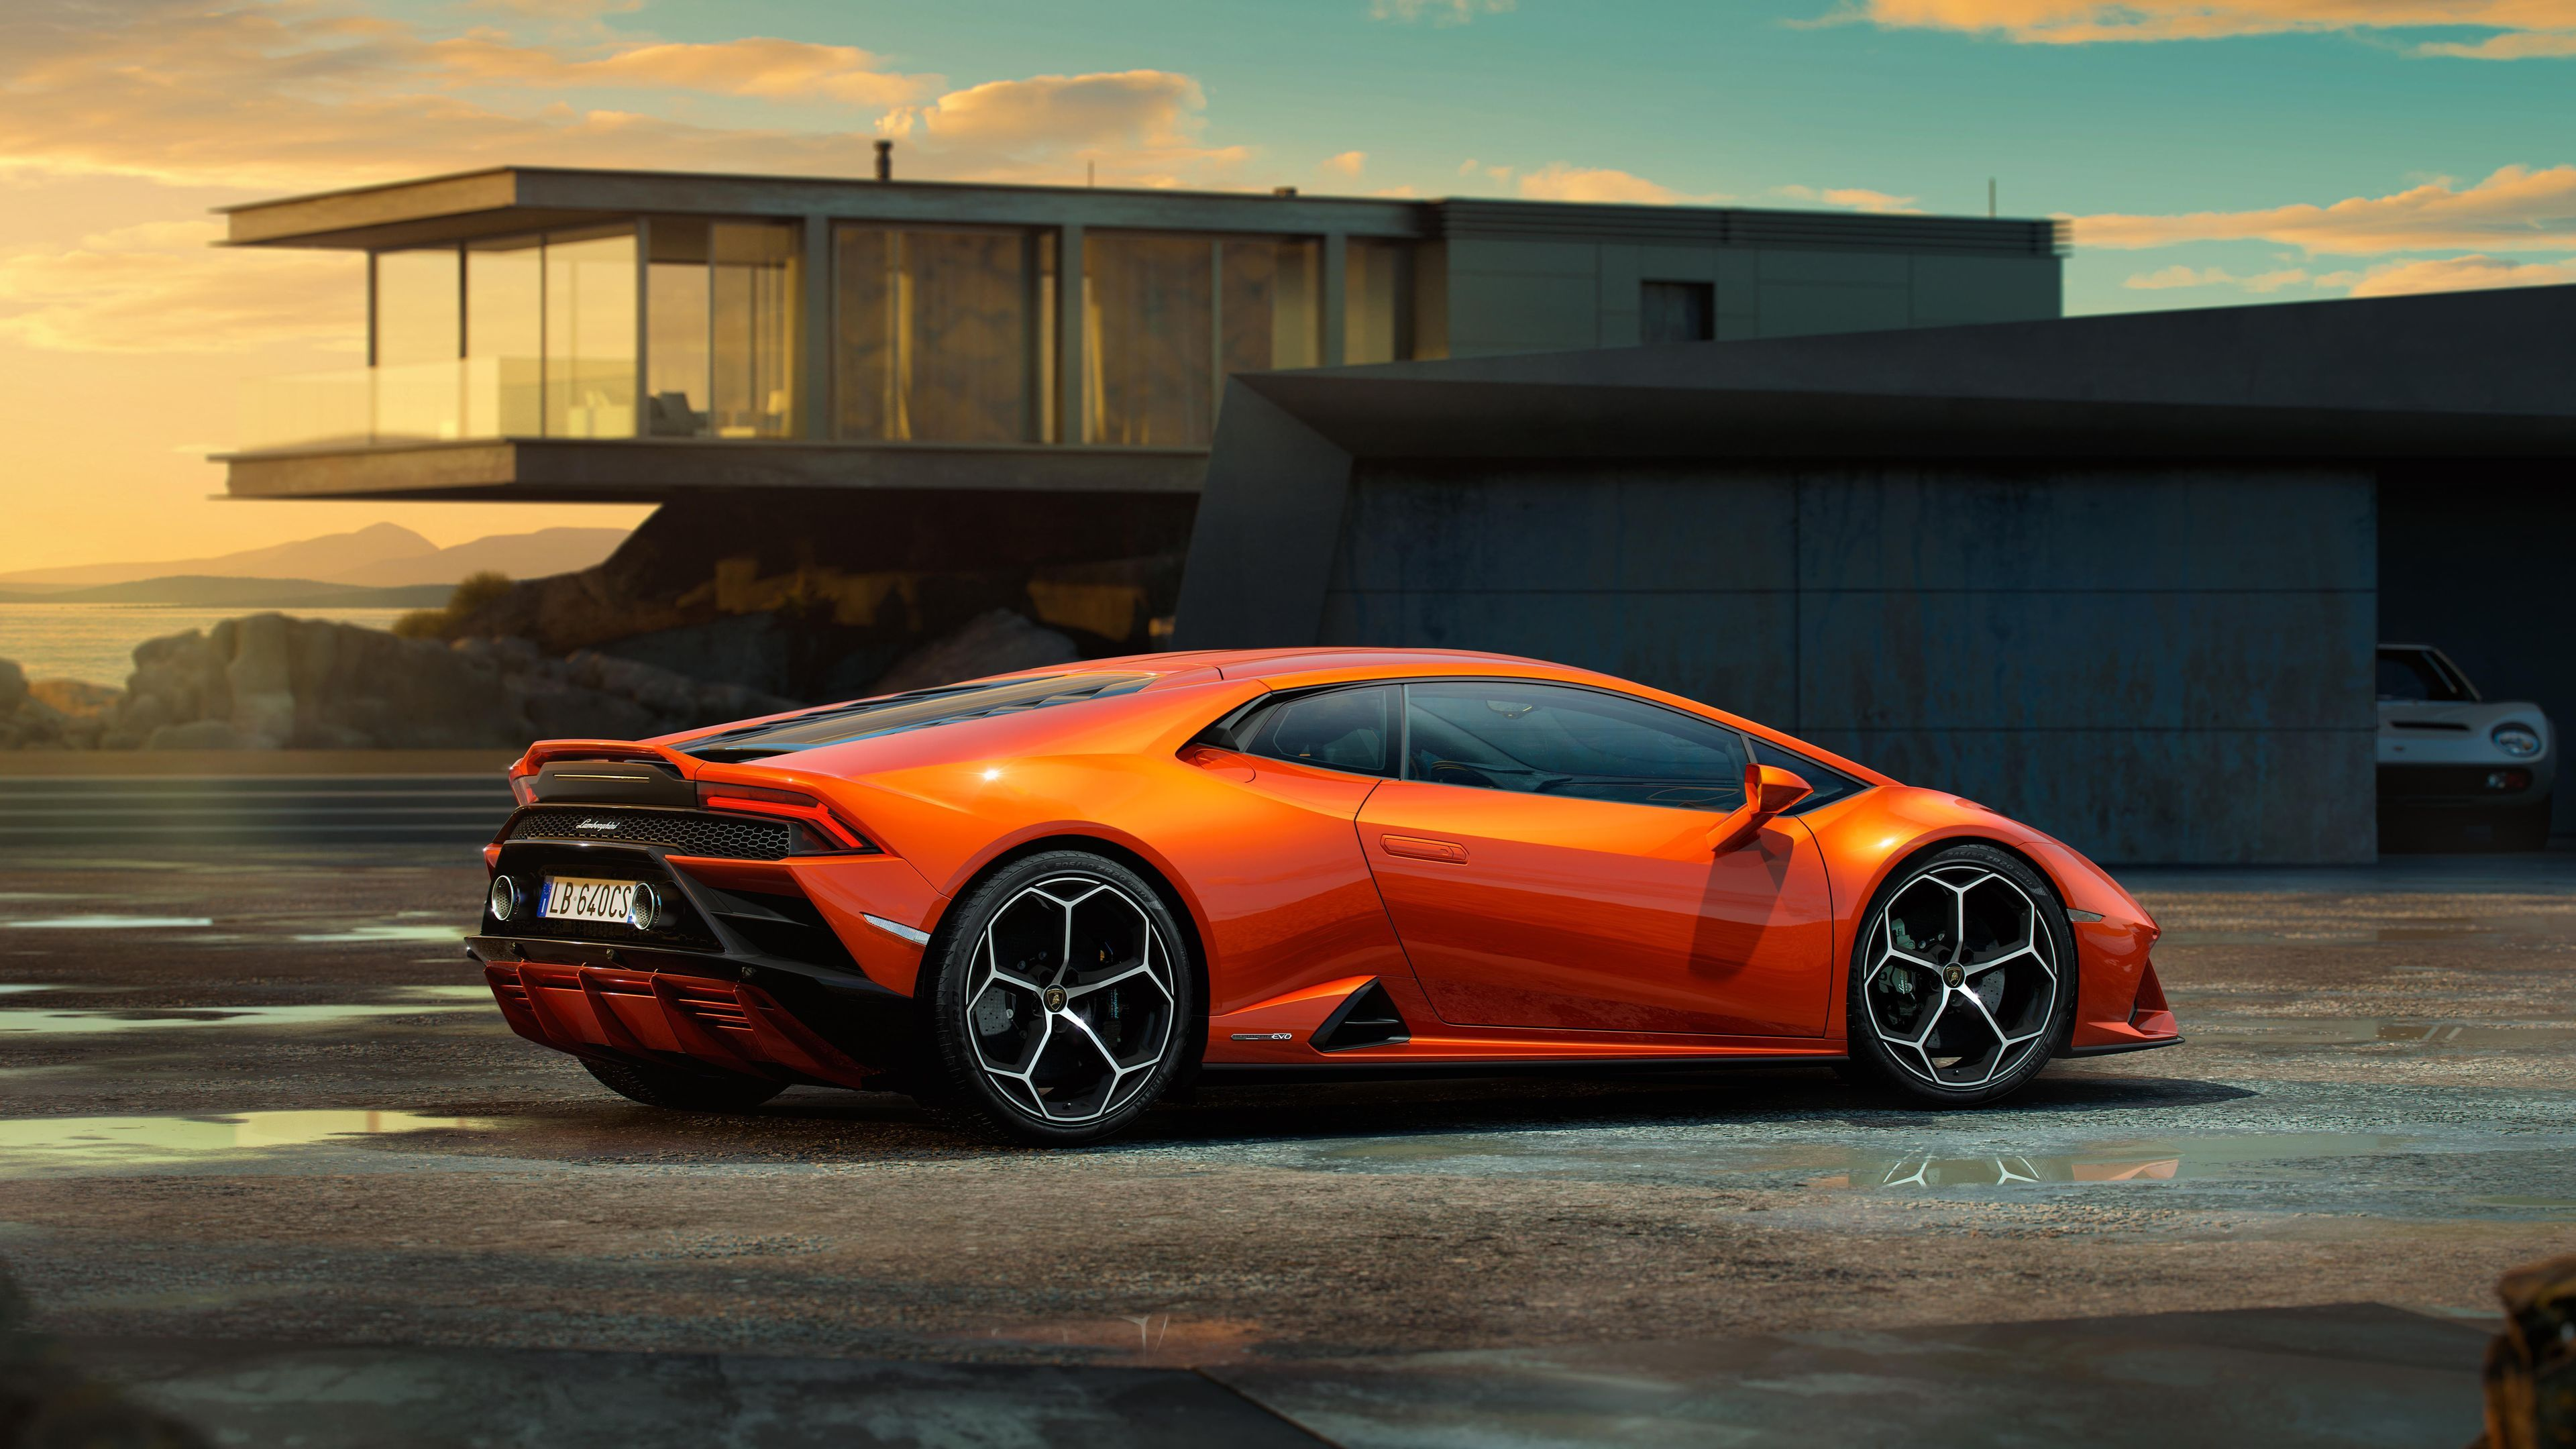 Wallpaper 4k Lamborghini Huracan Evo 2019 4k 10k Wallpapers 4k